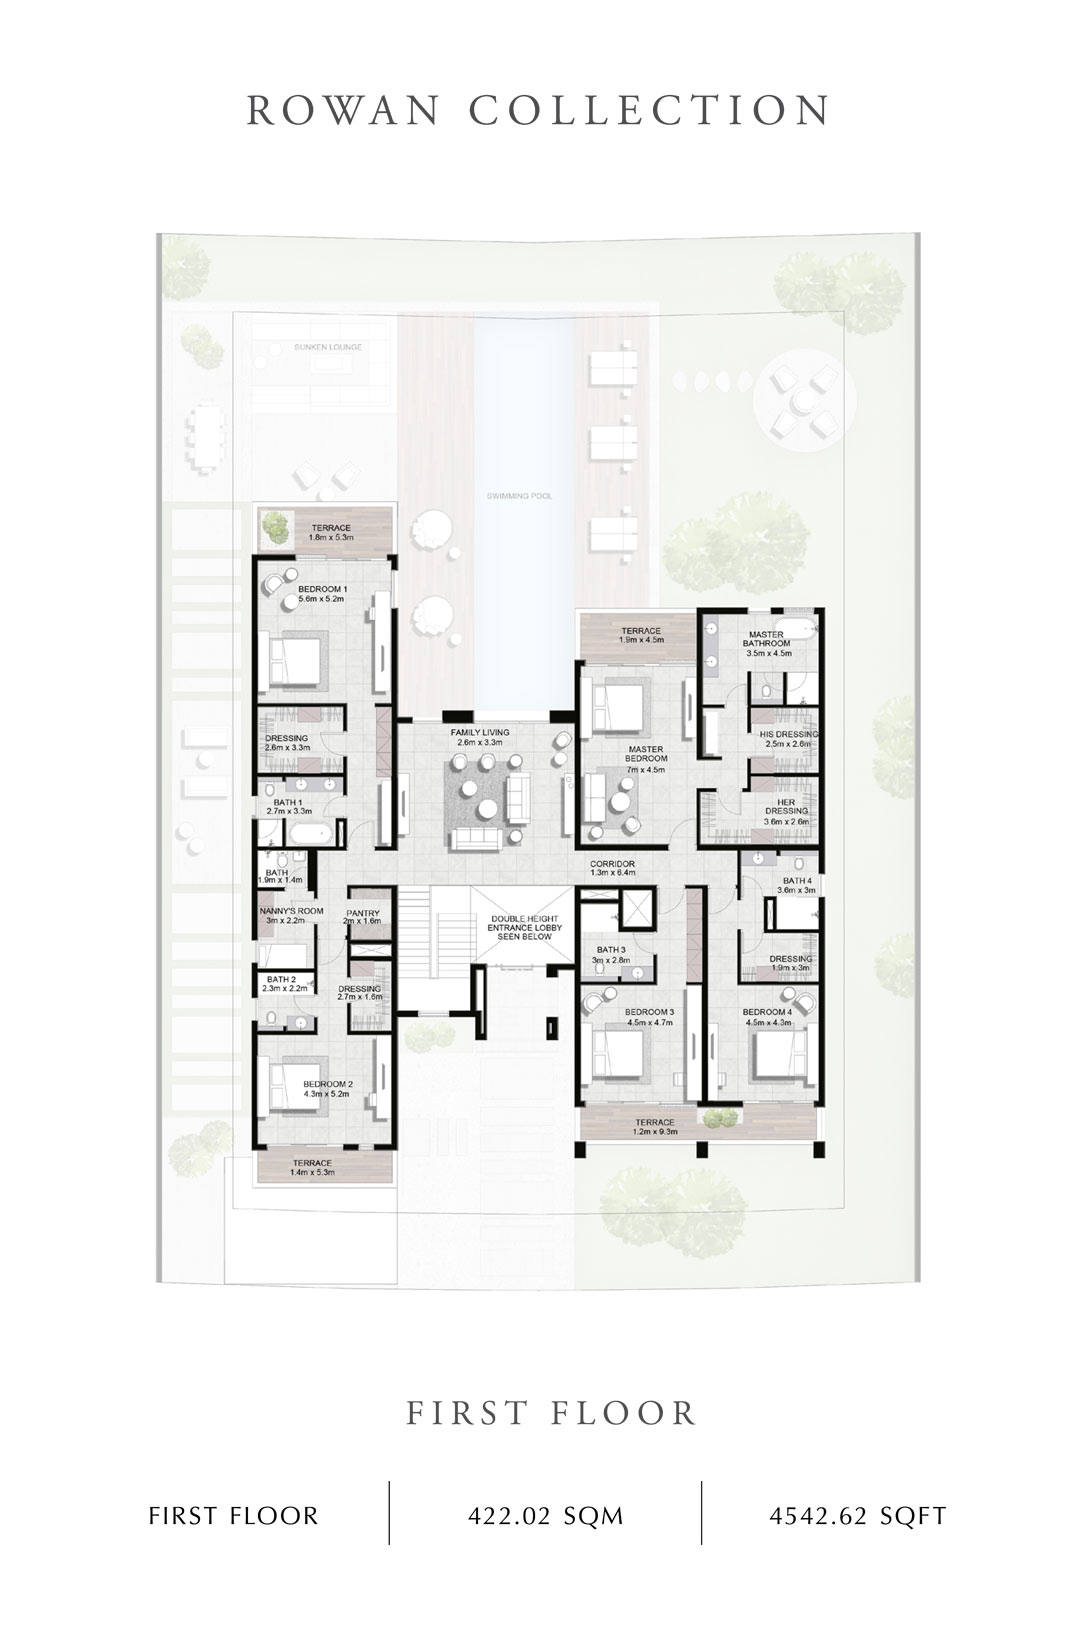 Rowan-Collection-First Floor, Size 4542 Sq Ft